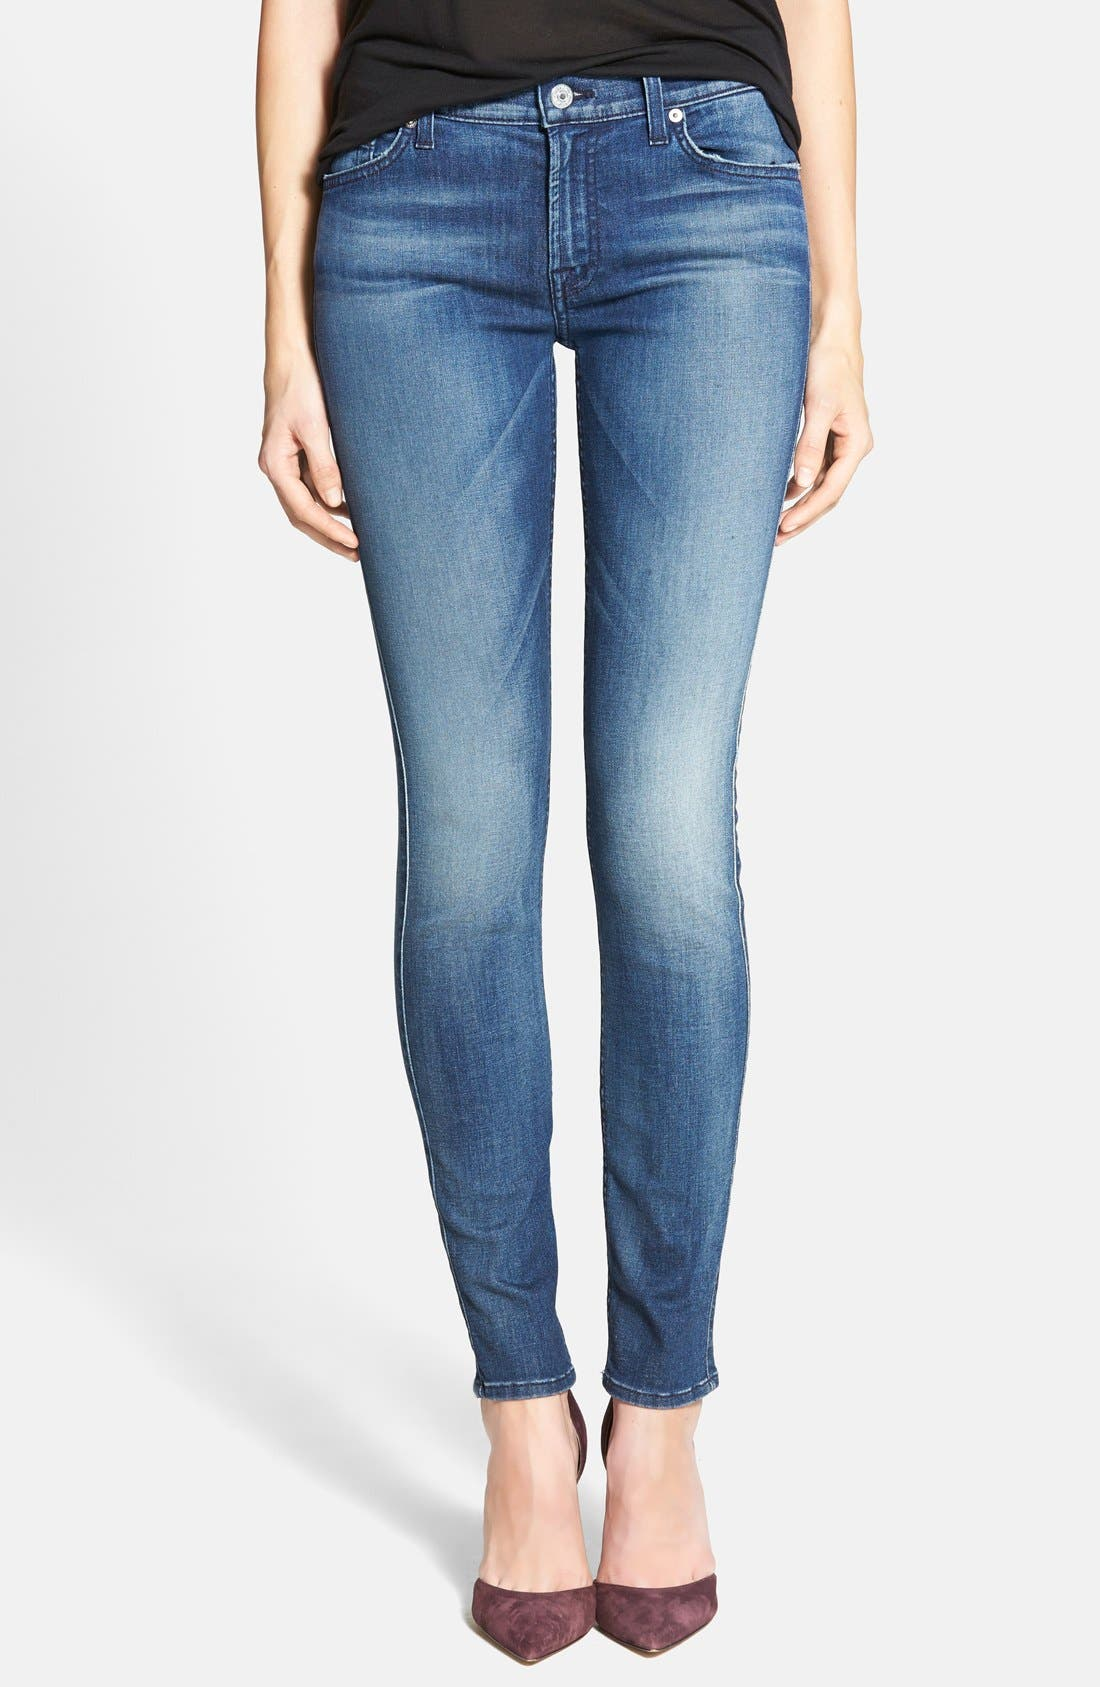 Alternate Image 1 Selected - 7 For All Mankind® 'The Skinny' Mid Rise Jeans (Summit Blue)